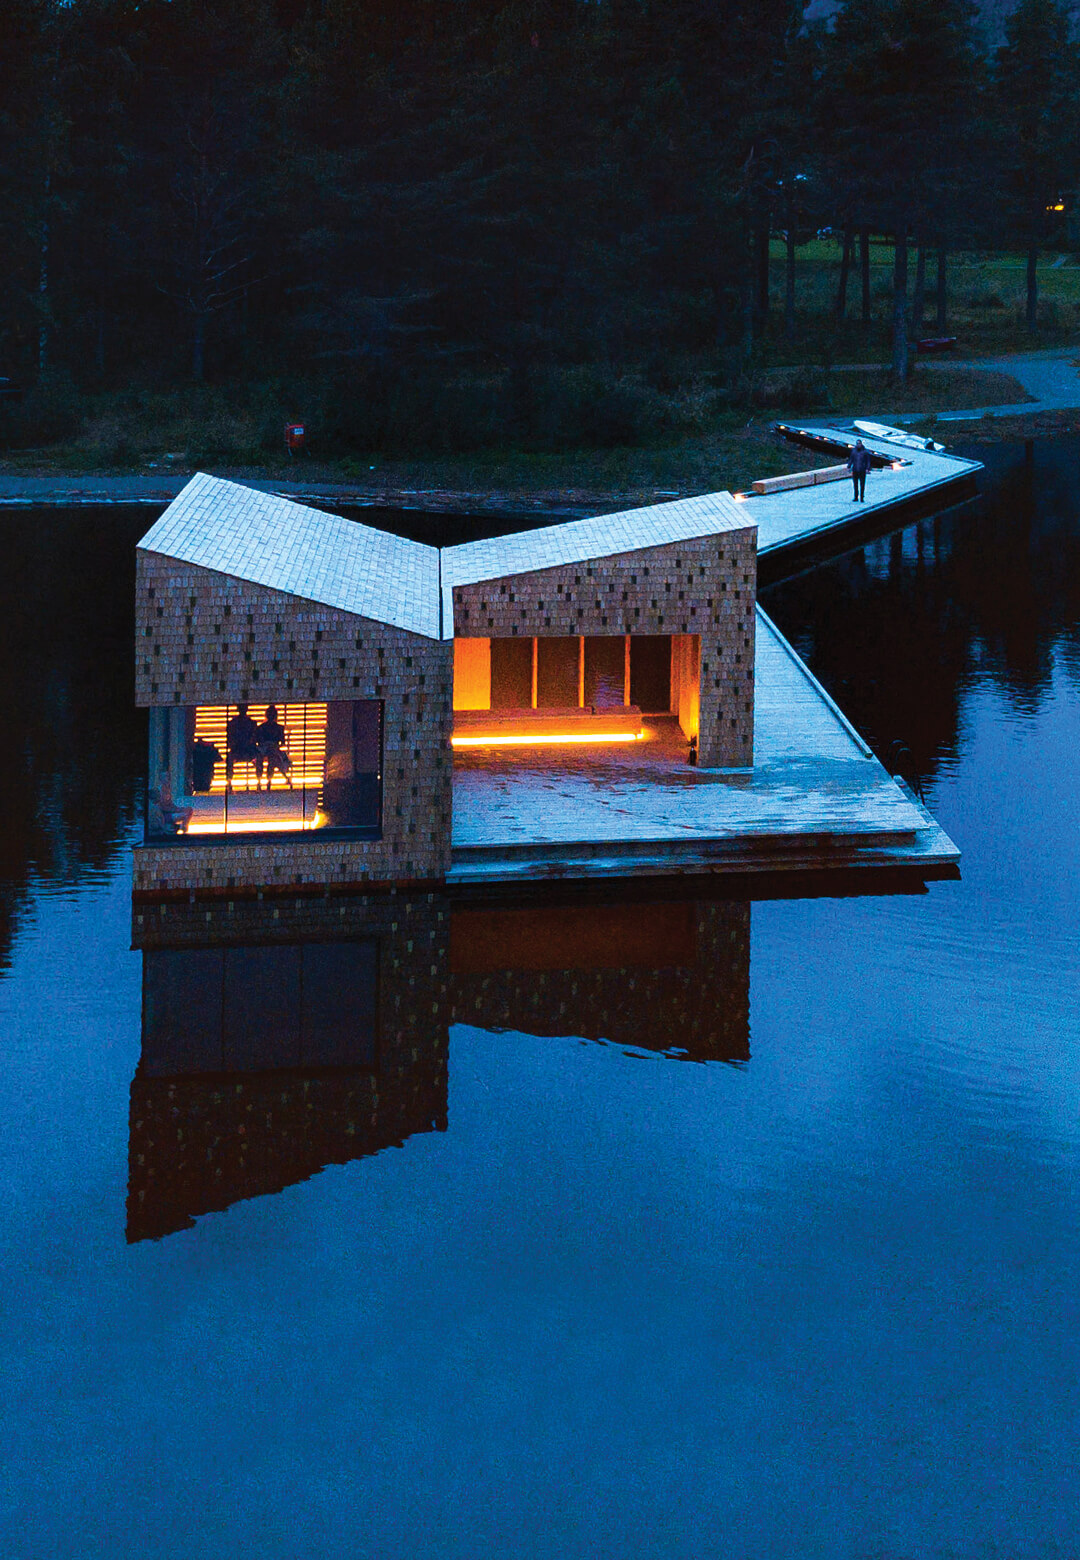 Soria Moria sauna by Lake Bandak in Telemark, featuring in DOGA at London Design Biennale 2021   London Design Biennale 2021  The Ripple Effect - Connecting People and Nature   STIRworld